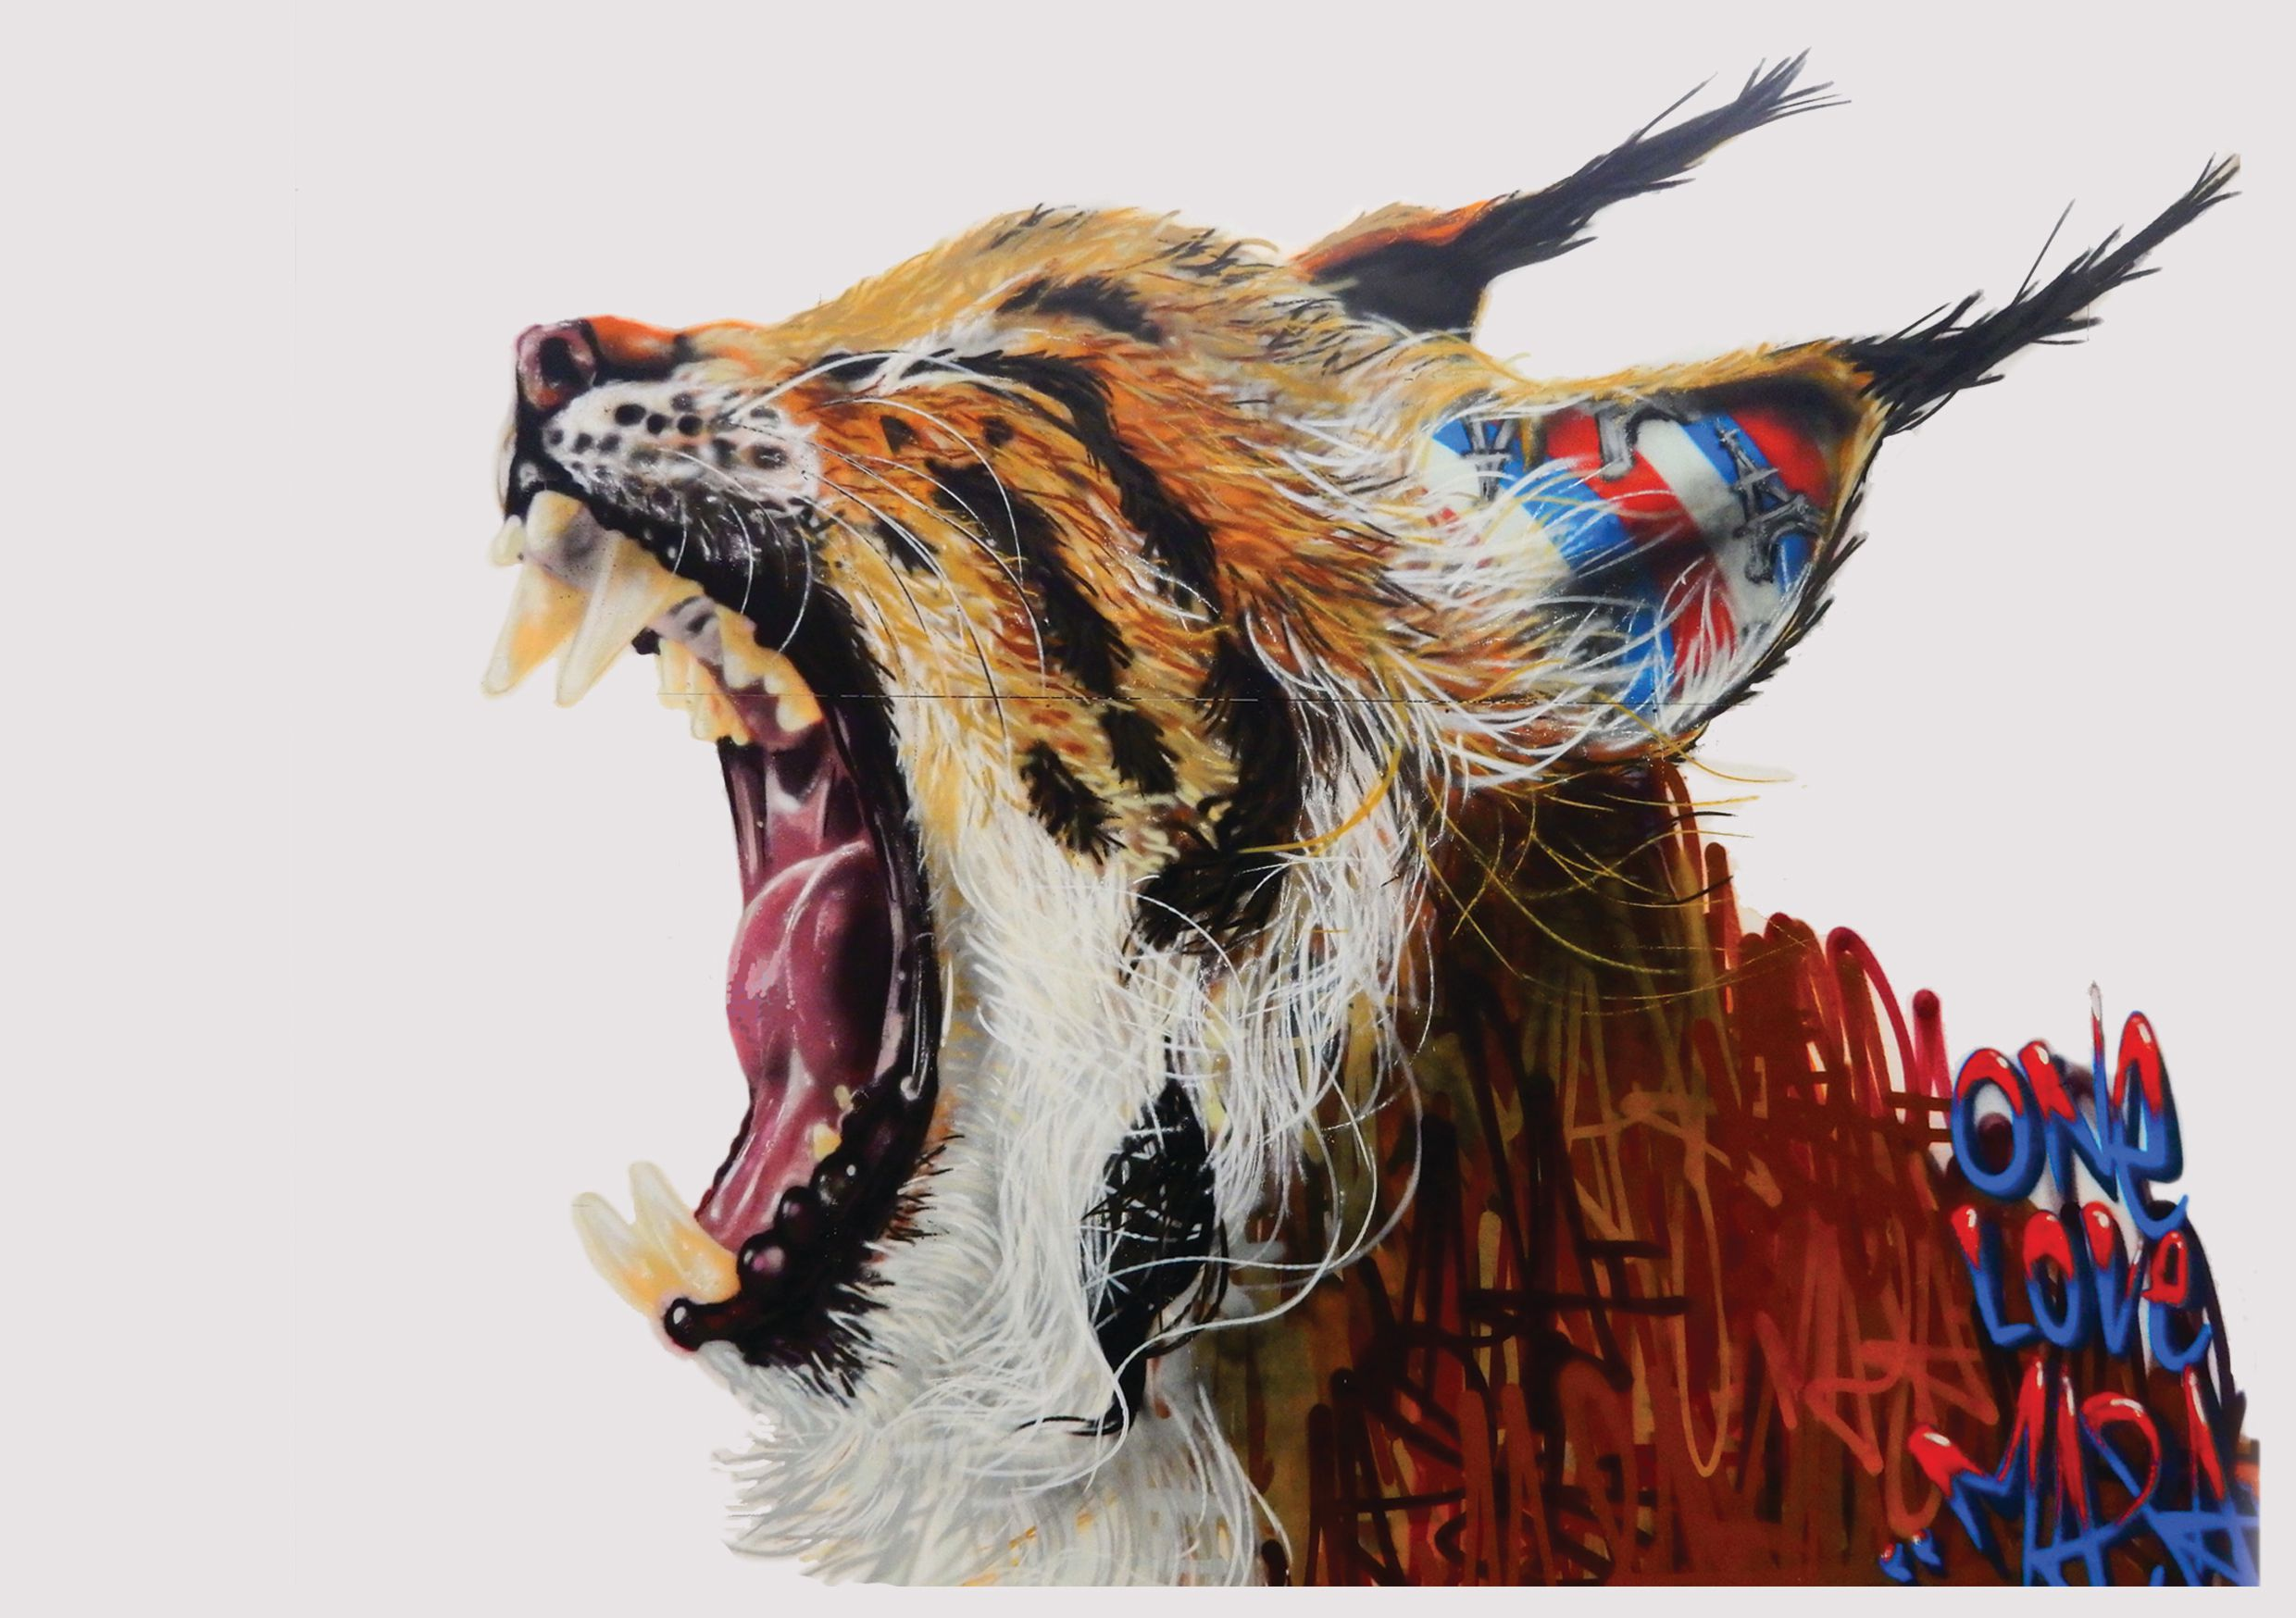 ENDANGERED 13: A mural project by Human Nature & Louis Masai